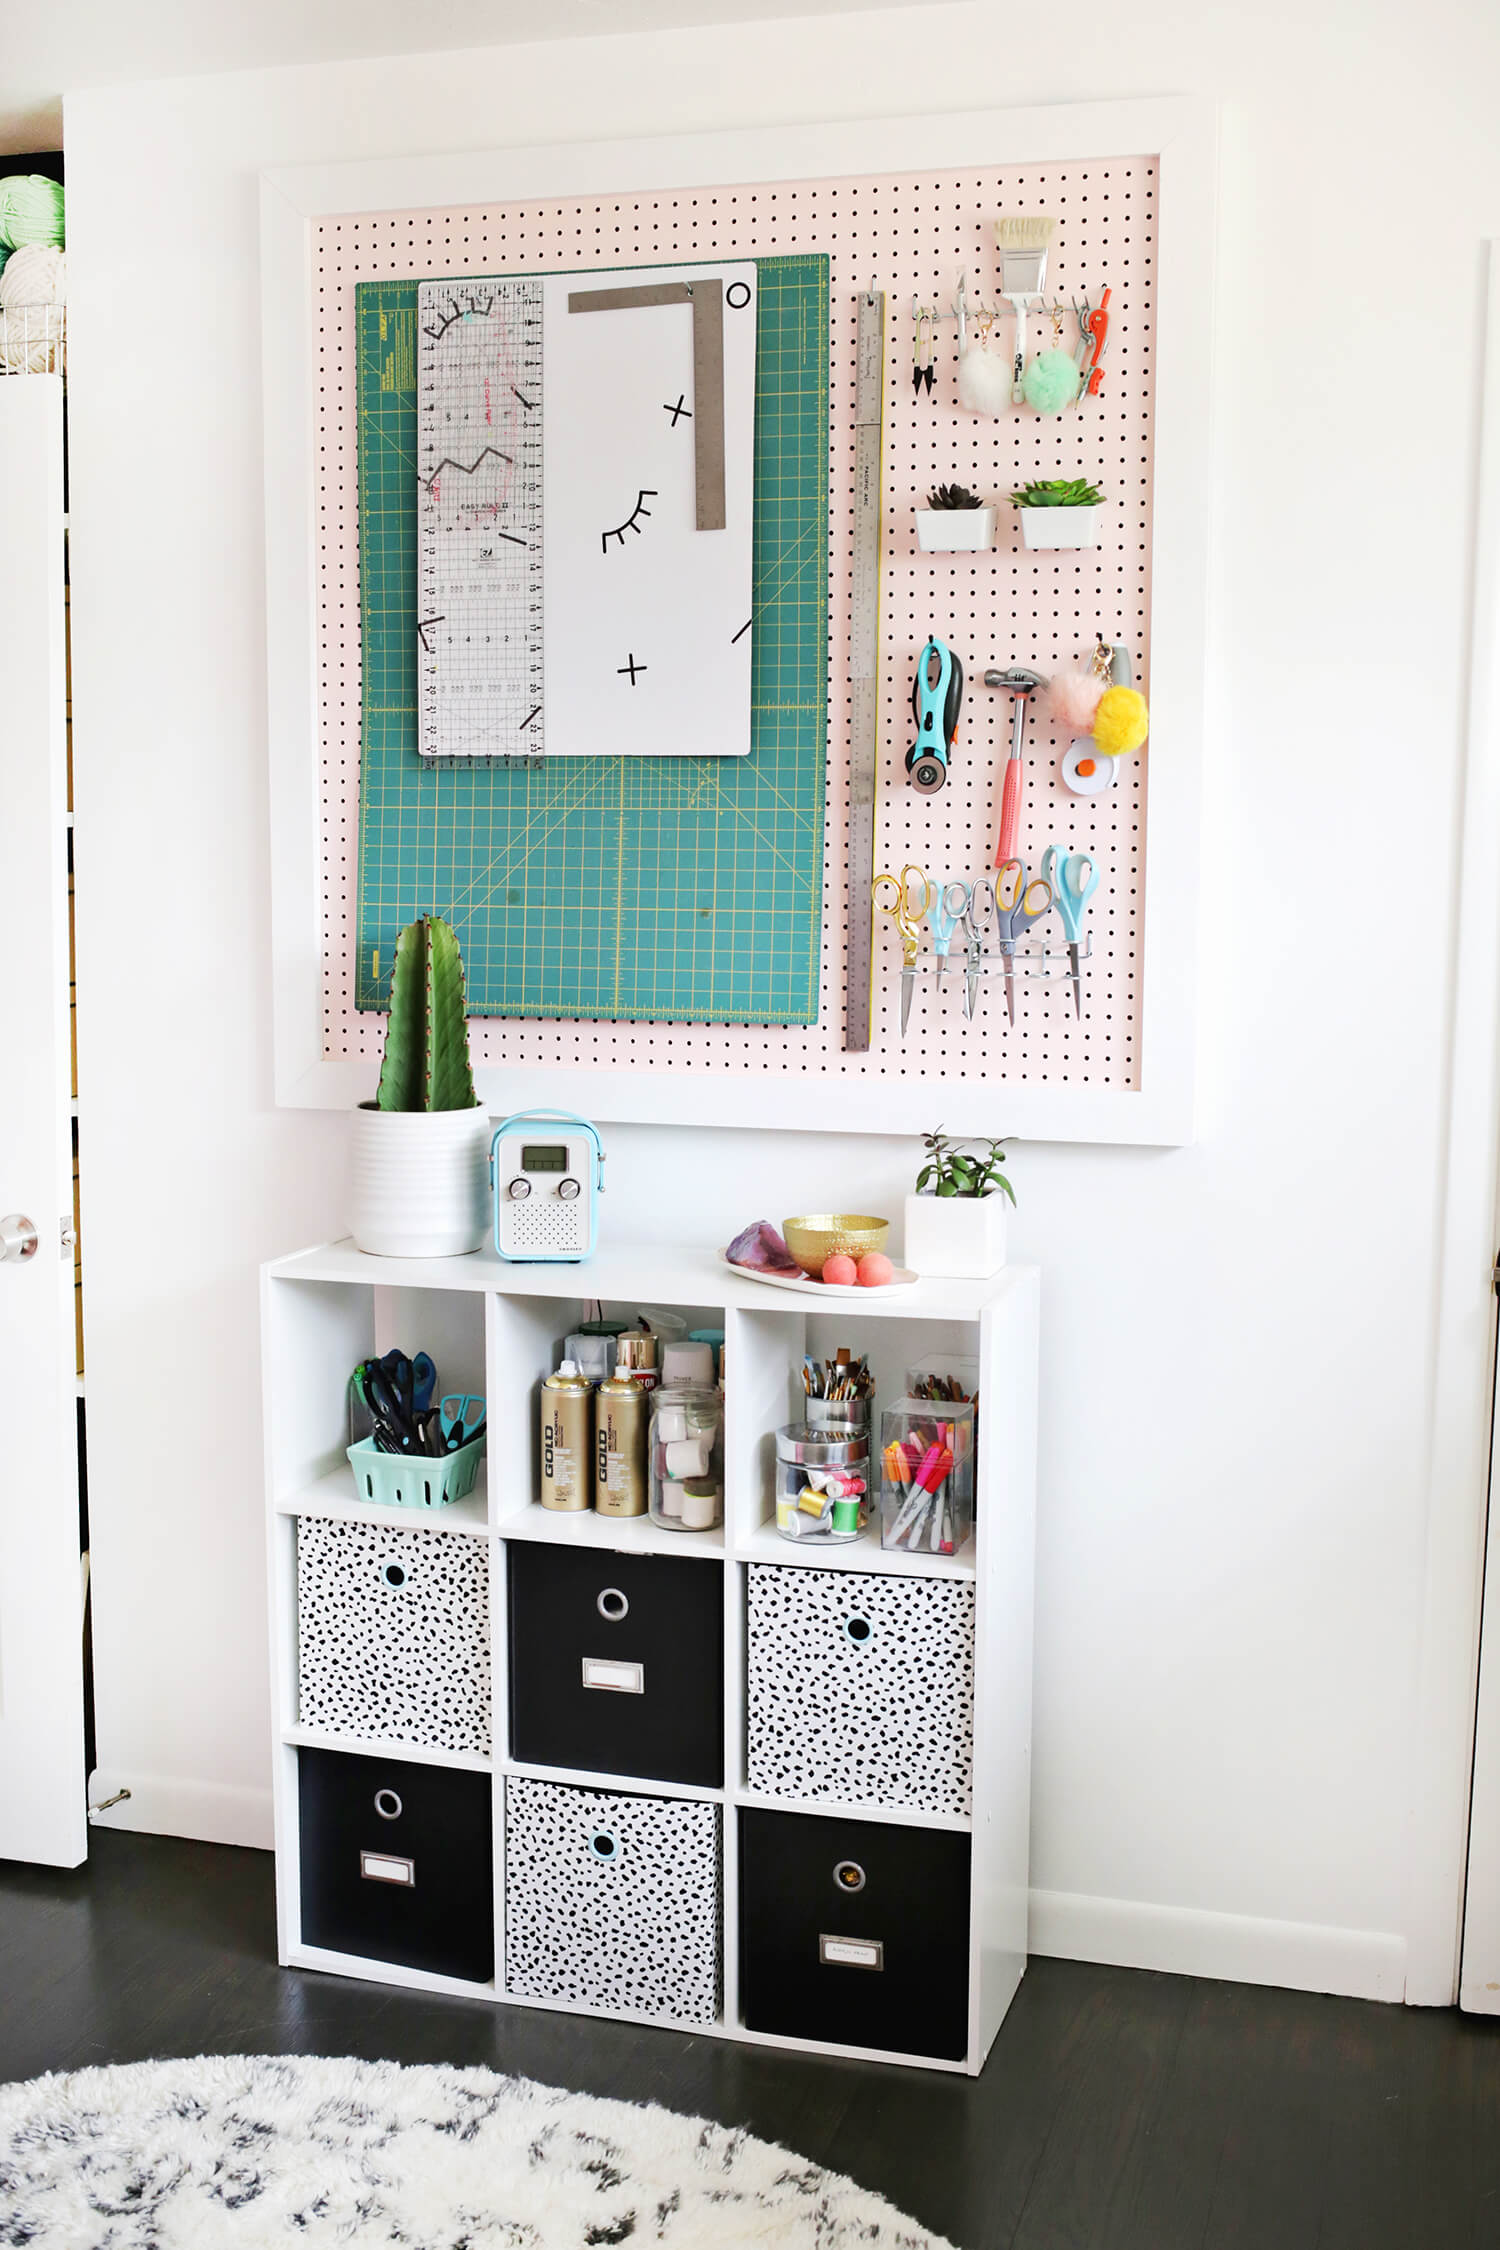 Laura's Craft Room from A Beautiful Mess  - Opposite the pink lockers is a square storage piece that has part closed, part open storage (remember about displaying your favorite pieces) plus a pegboard to hold awkward stuff + cute stuff. PomPoms = necessary crafting equipment.